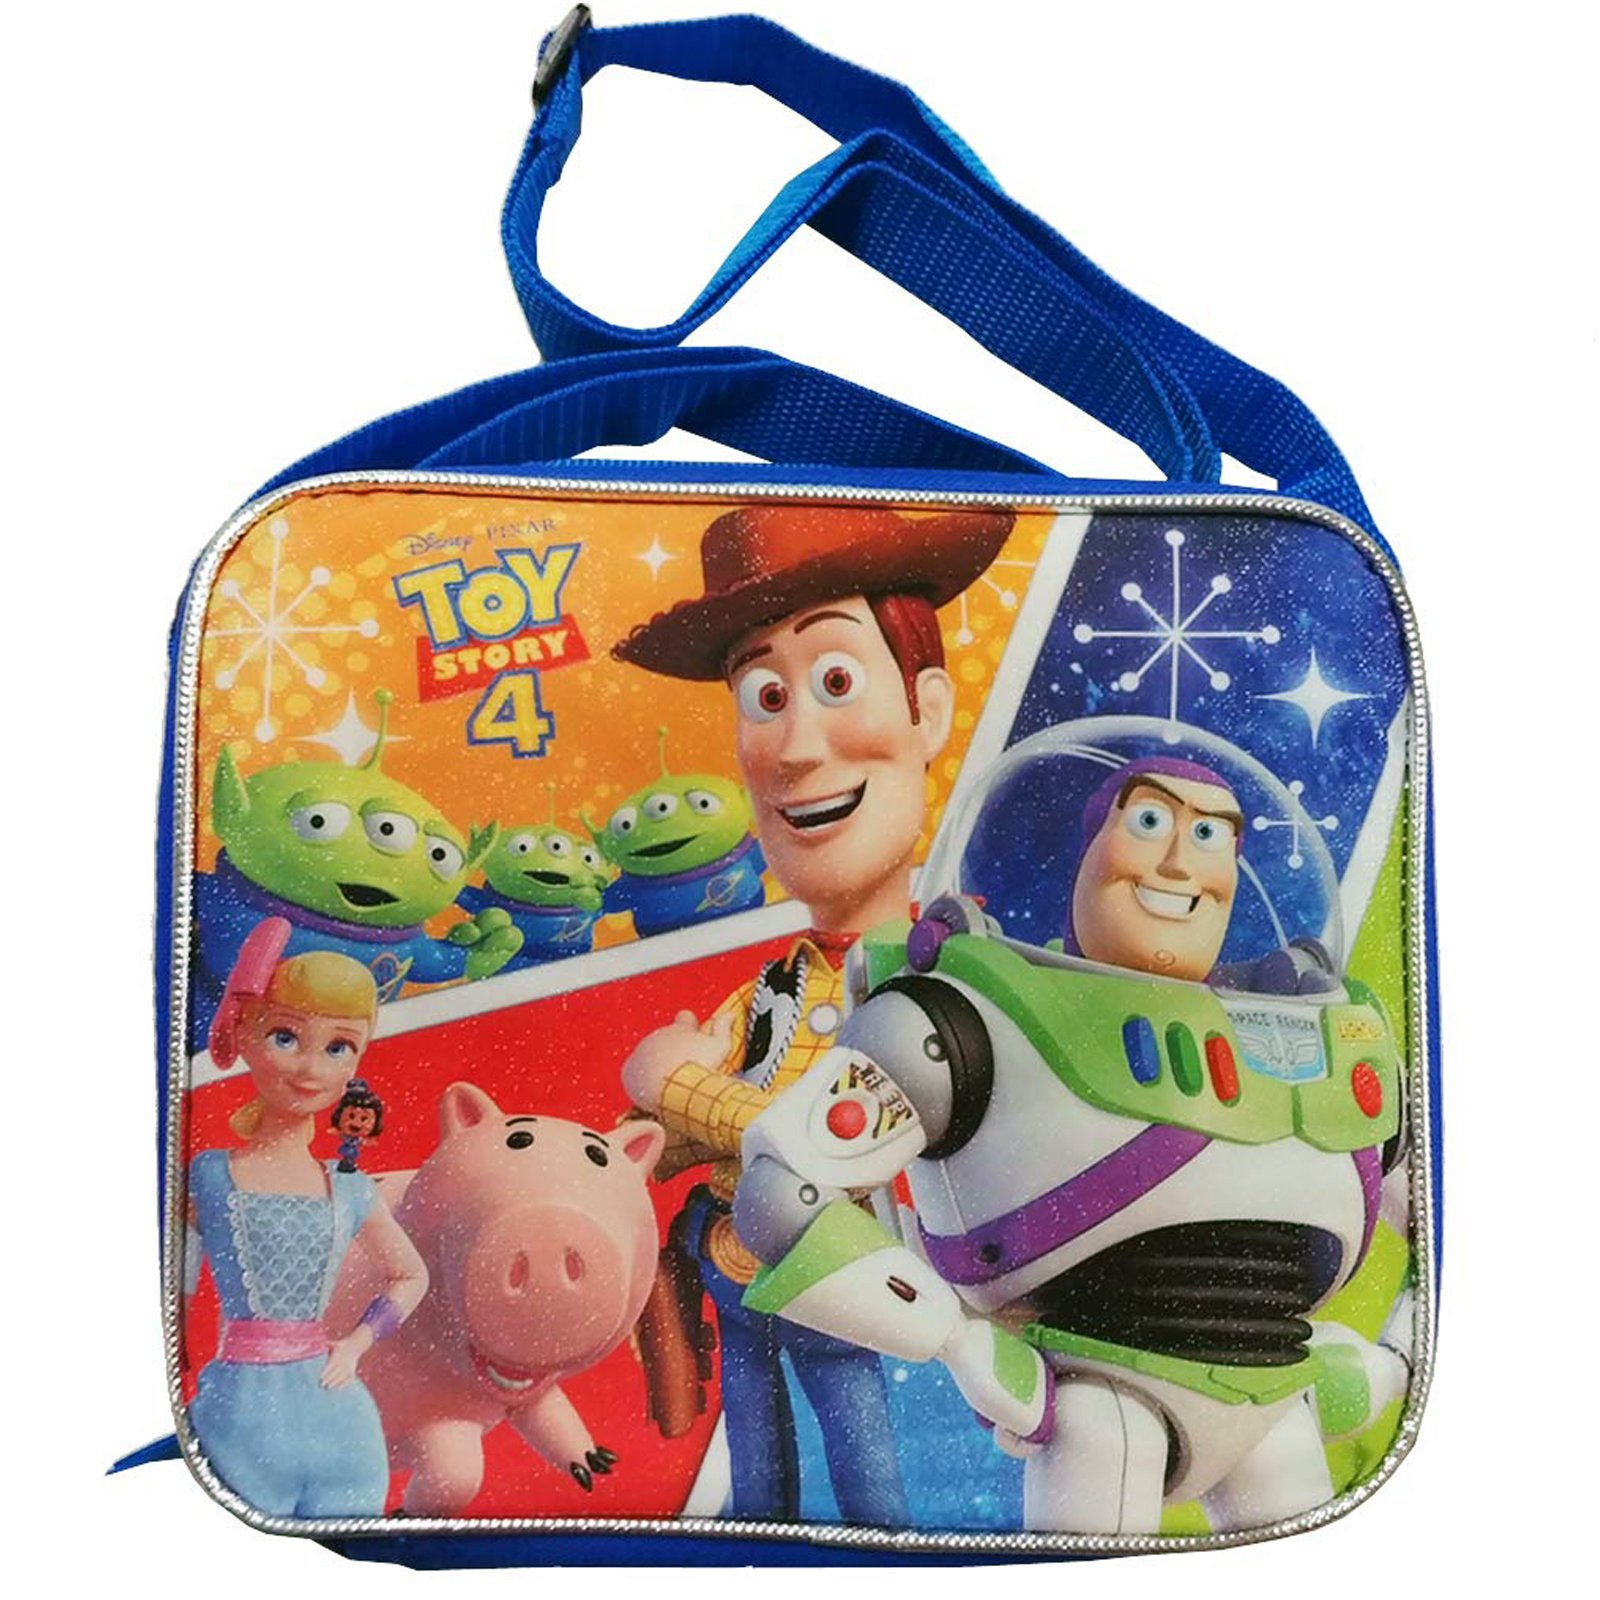 Disney Pixar Toy Story 4 Kids Insulated Lunch Box Bag Shoulder Strap School